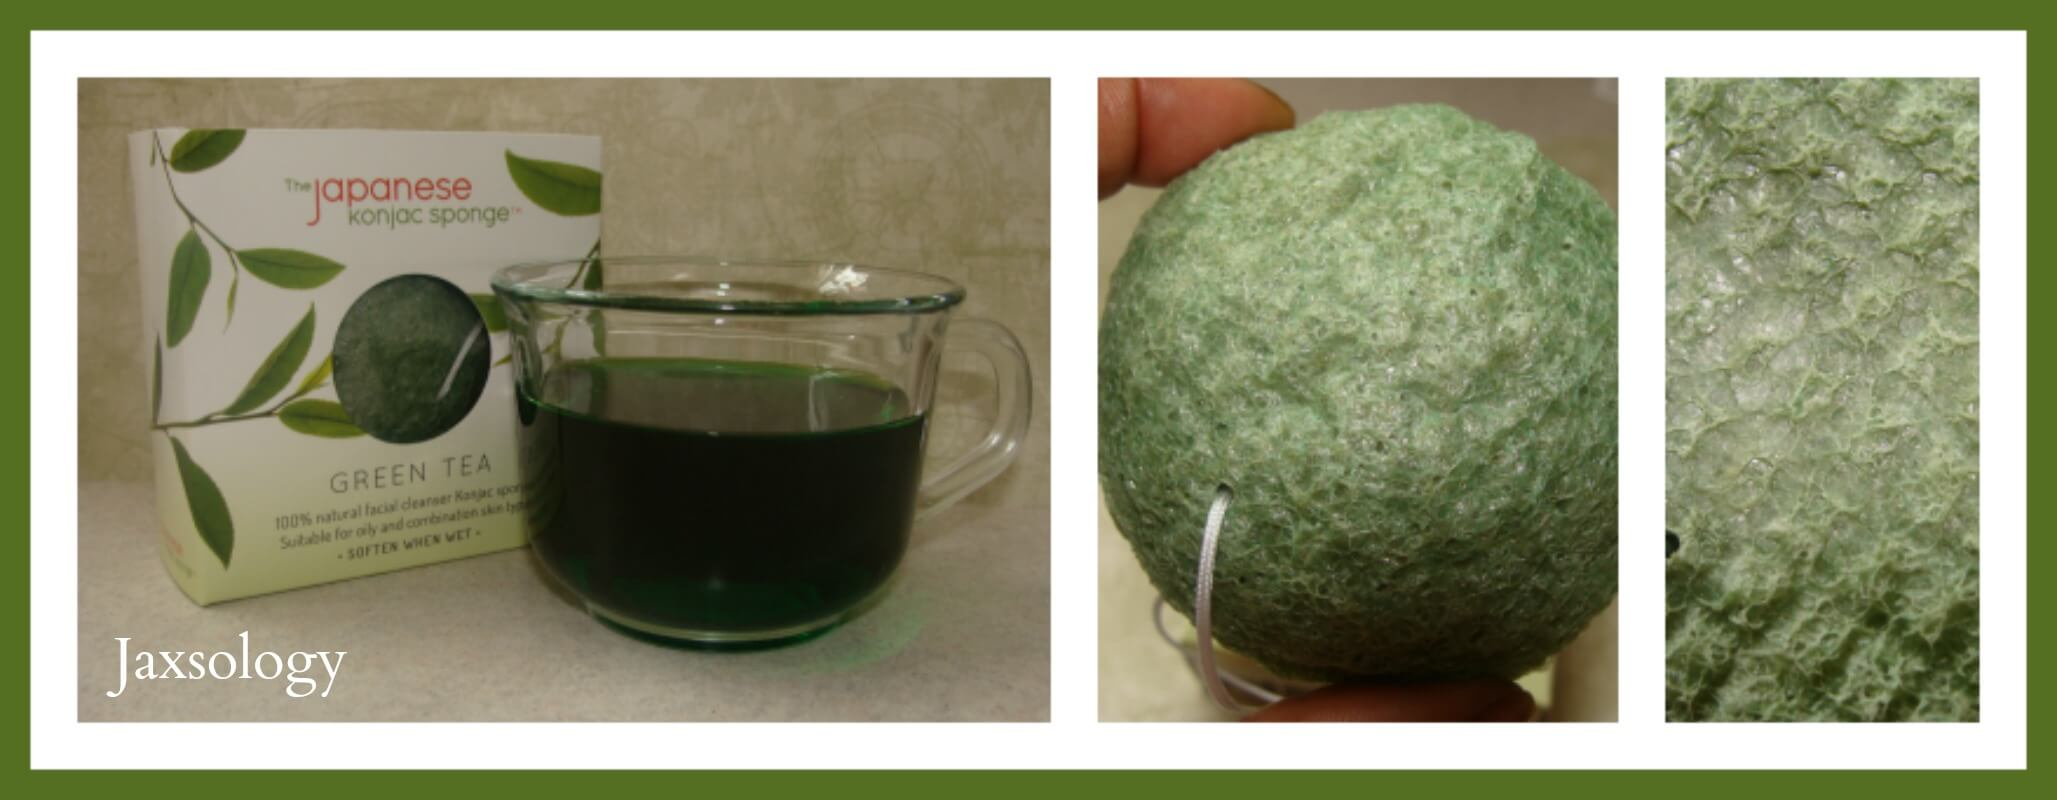 Japanese Konjac Sponge up close